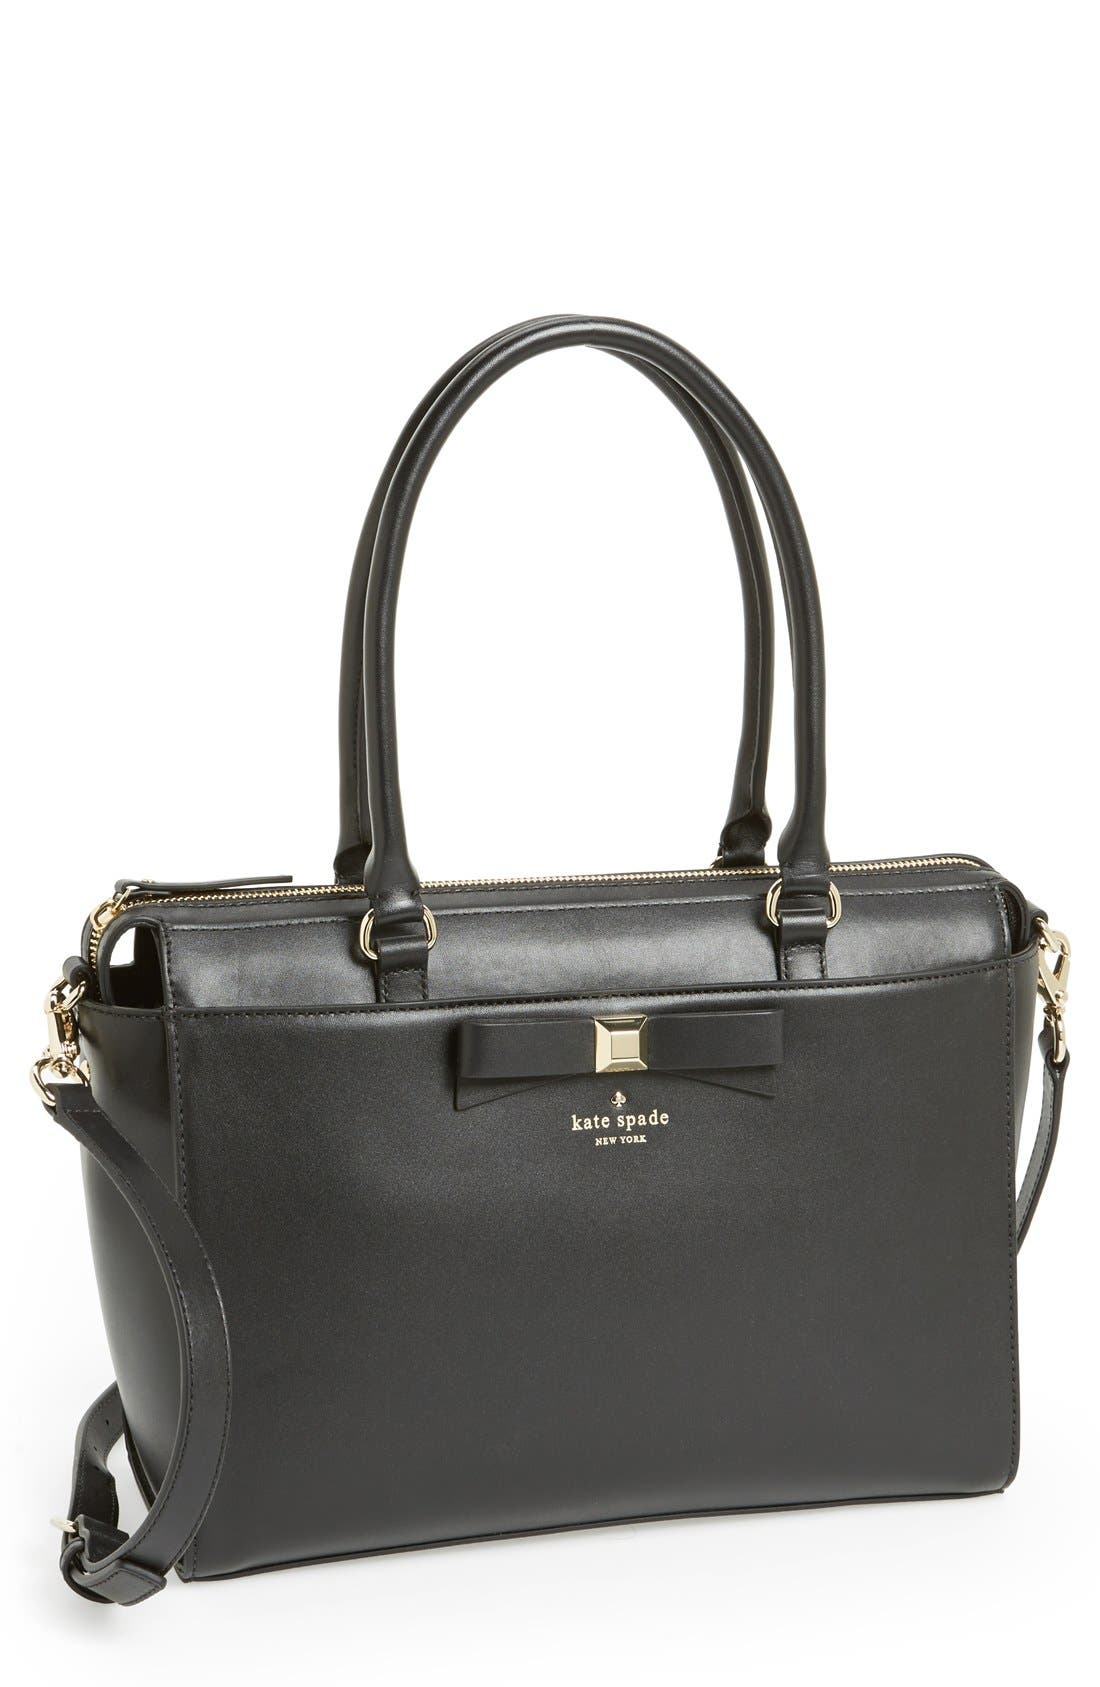 Main Image - kate spade new york 'holly street - jeanne' leather tote